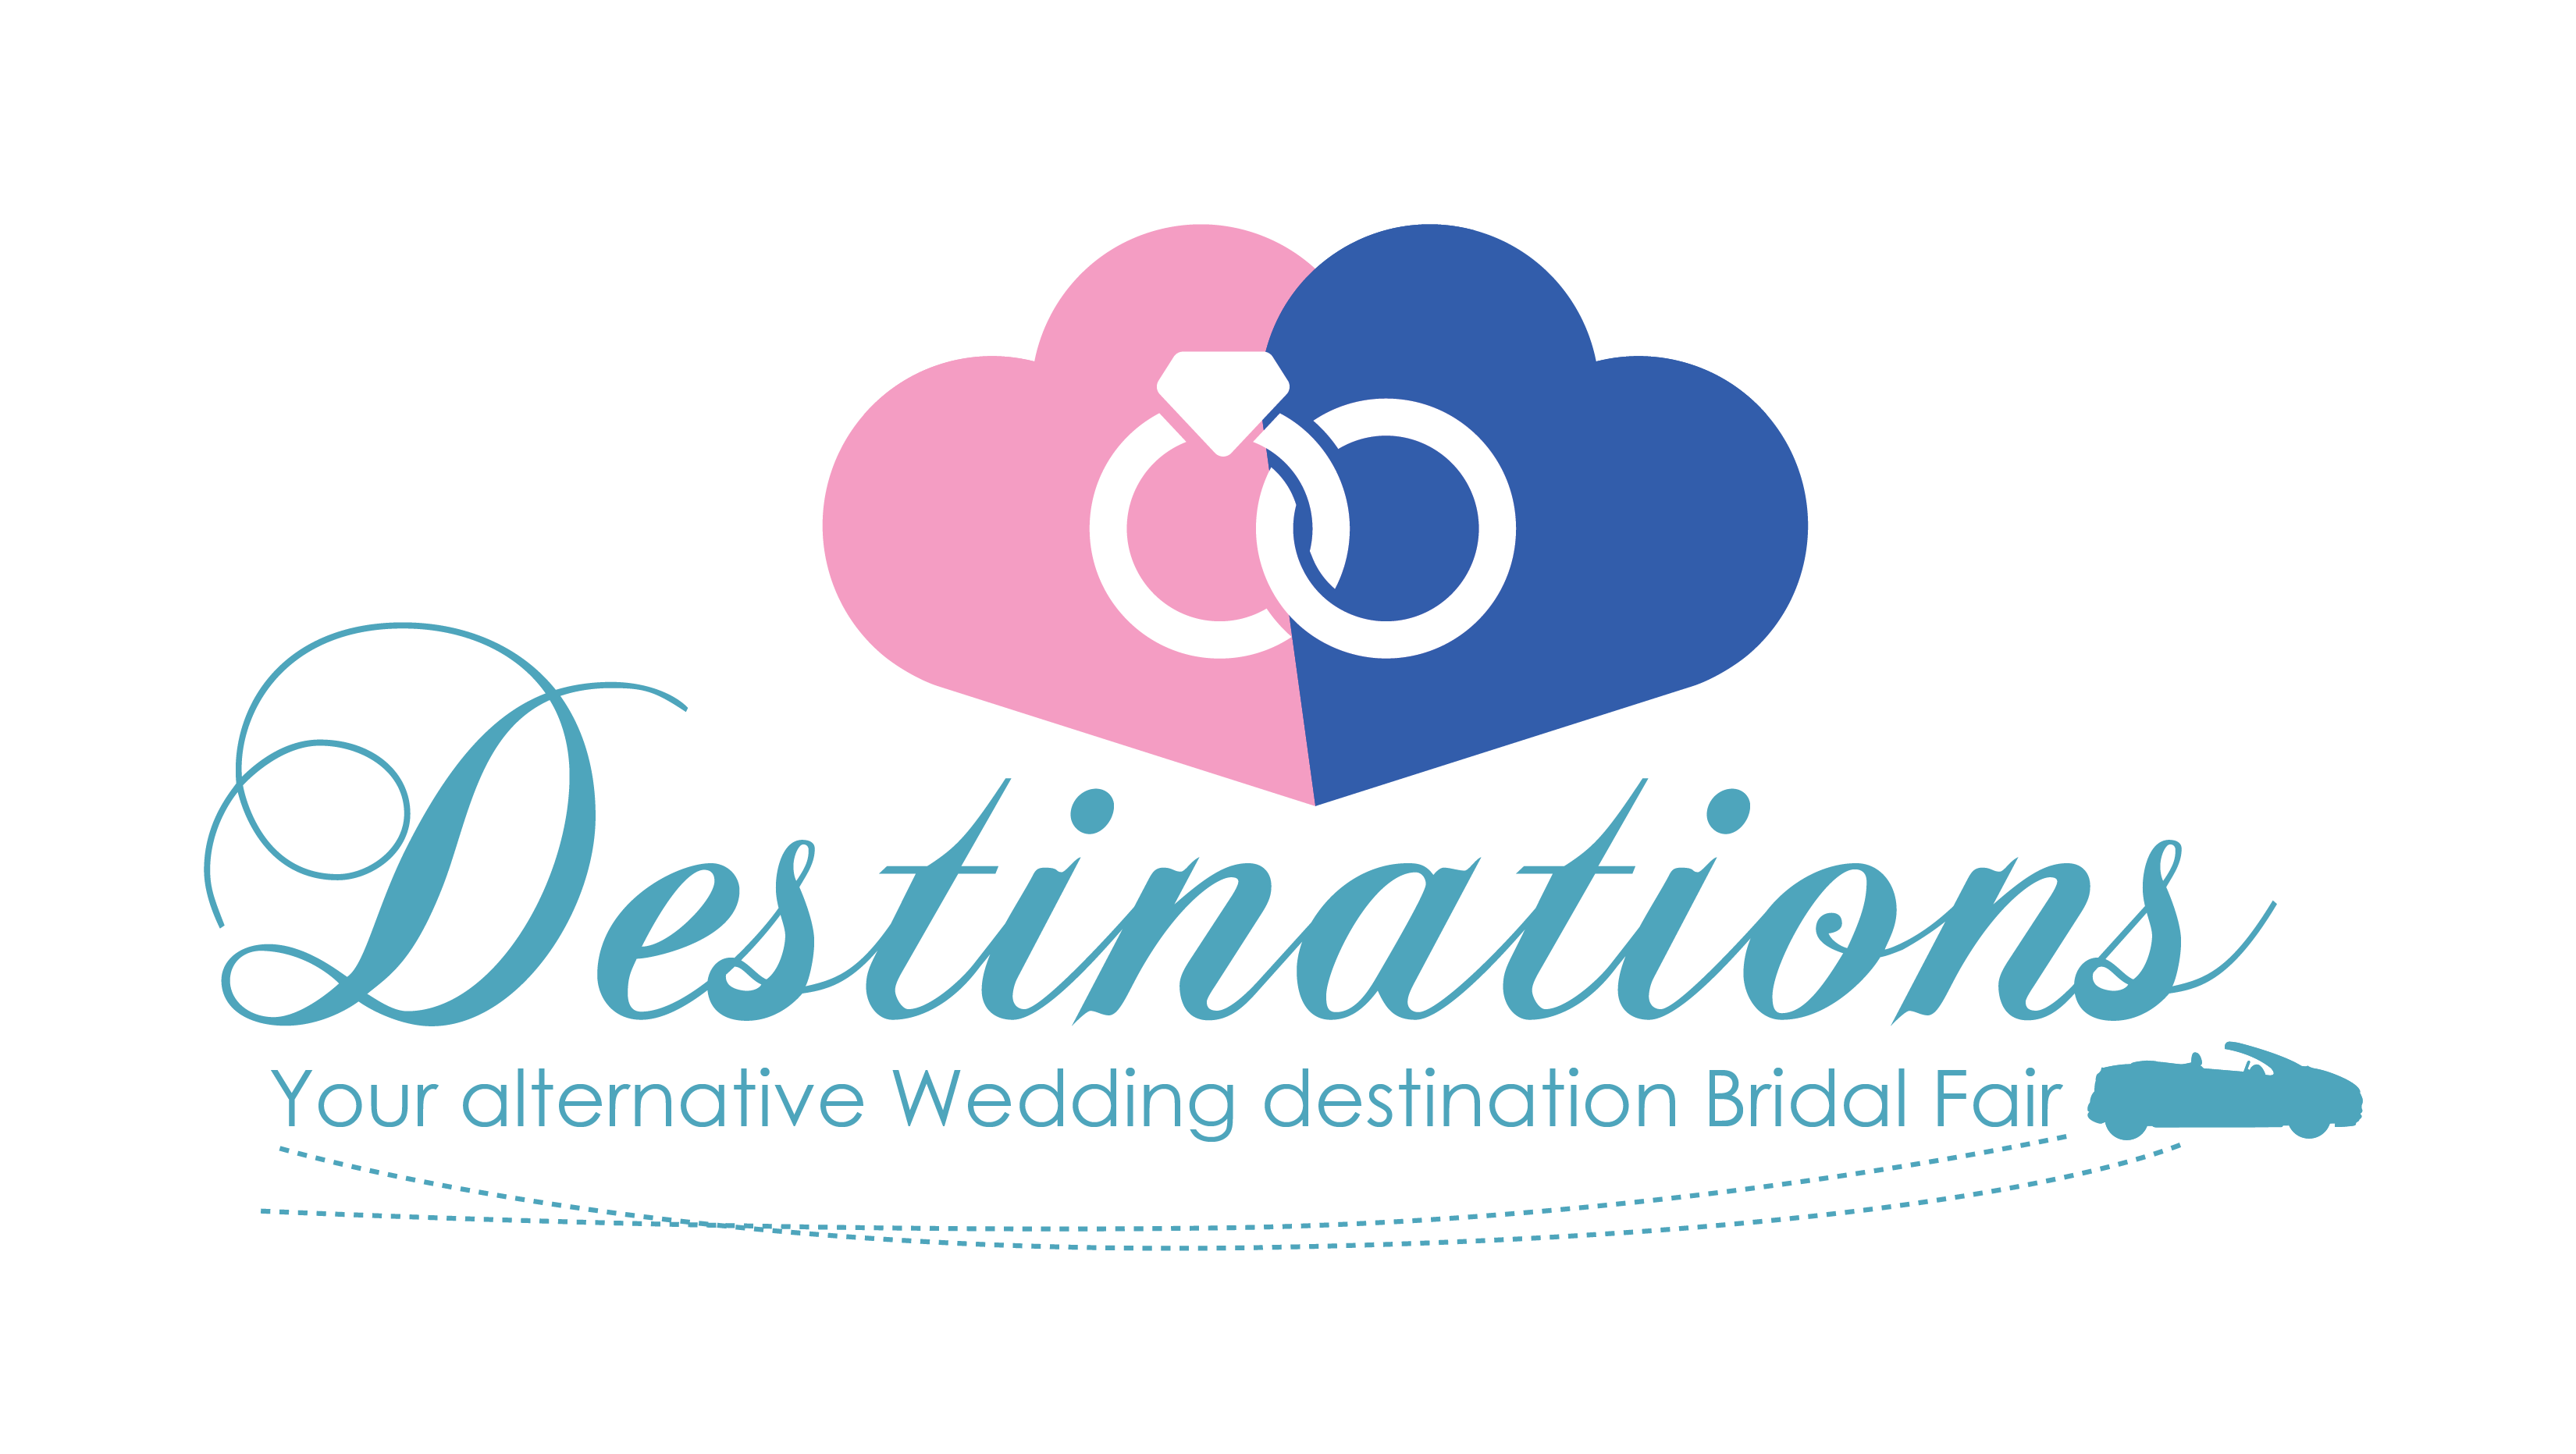 Destinations Bridal fair logo